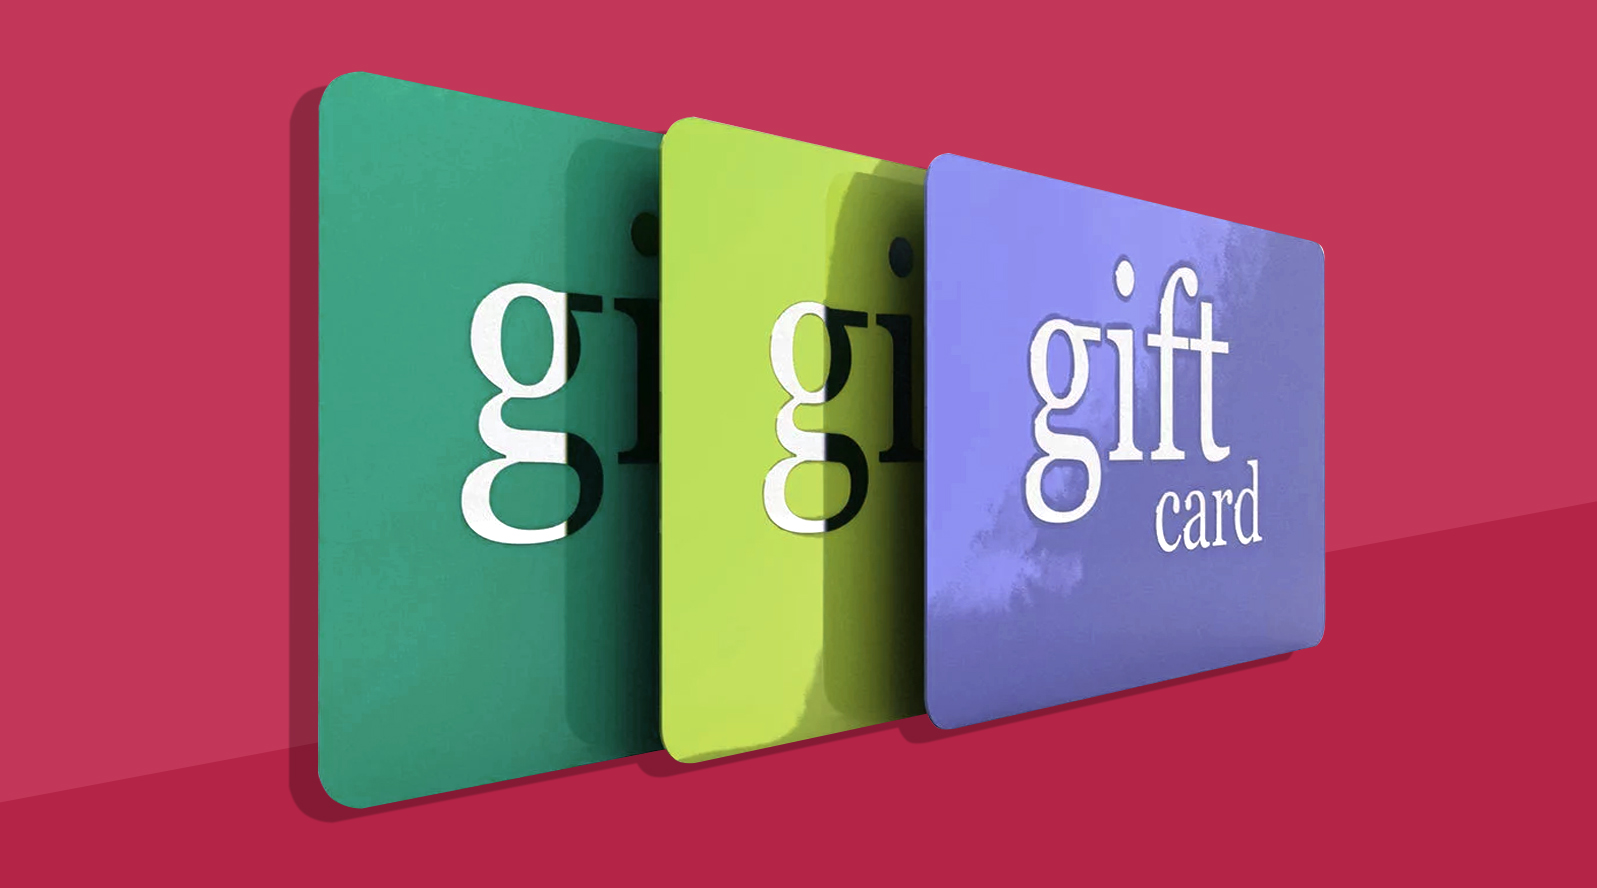 Gift card ideas - thoughtful, creative gift cards to give for Christmas, birthdays, and more